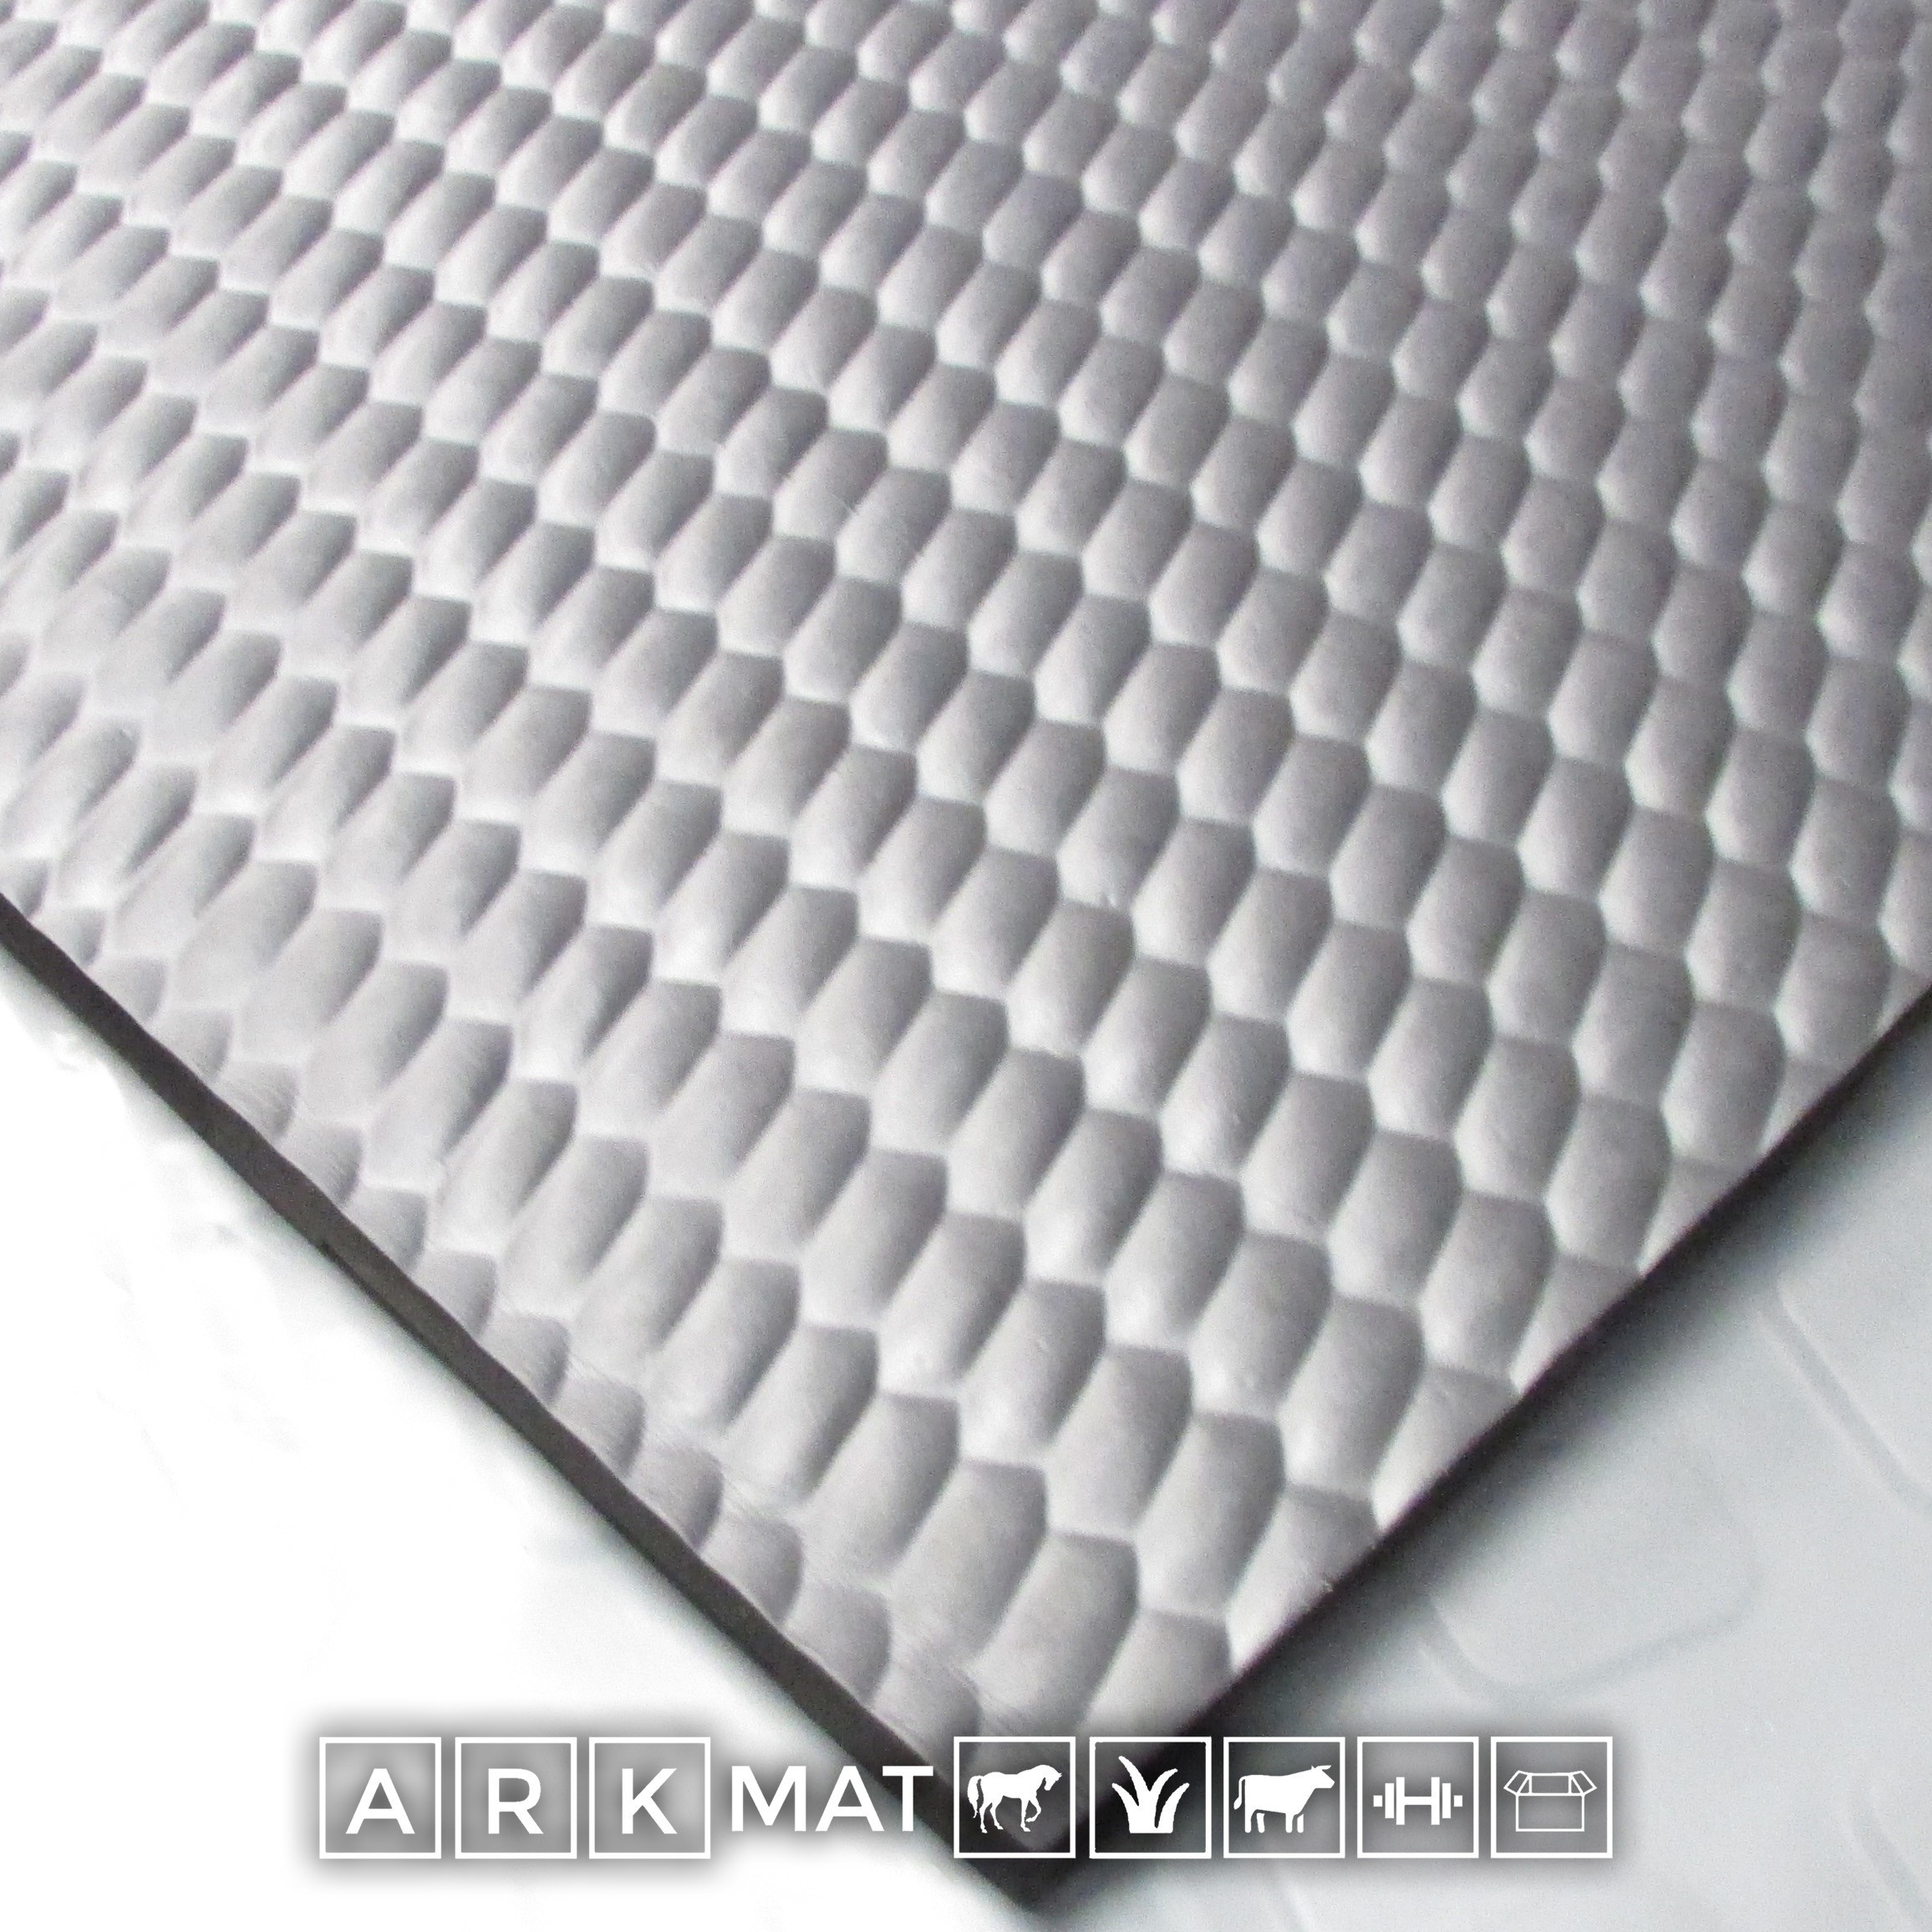 24mm EVA Stable Floor Mats